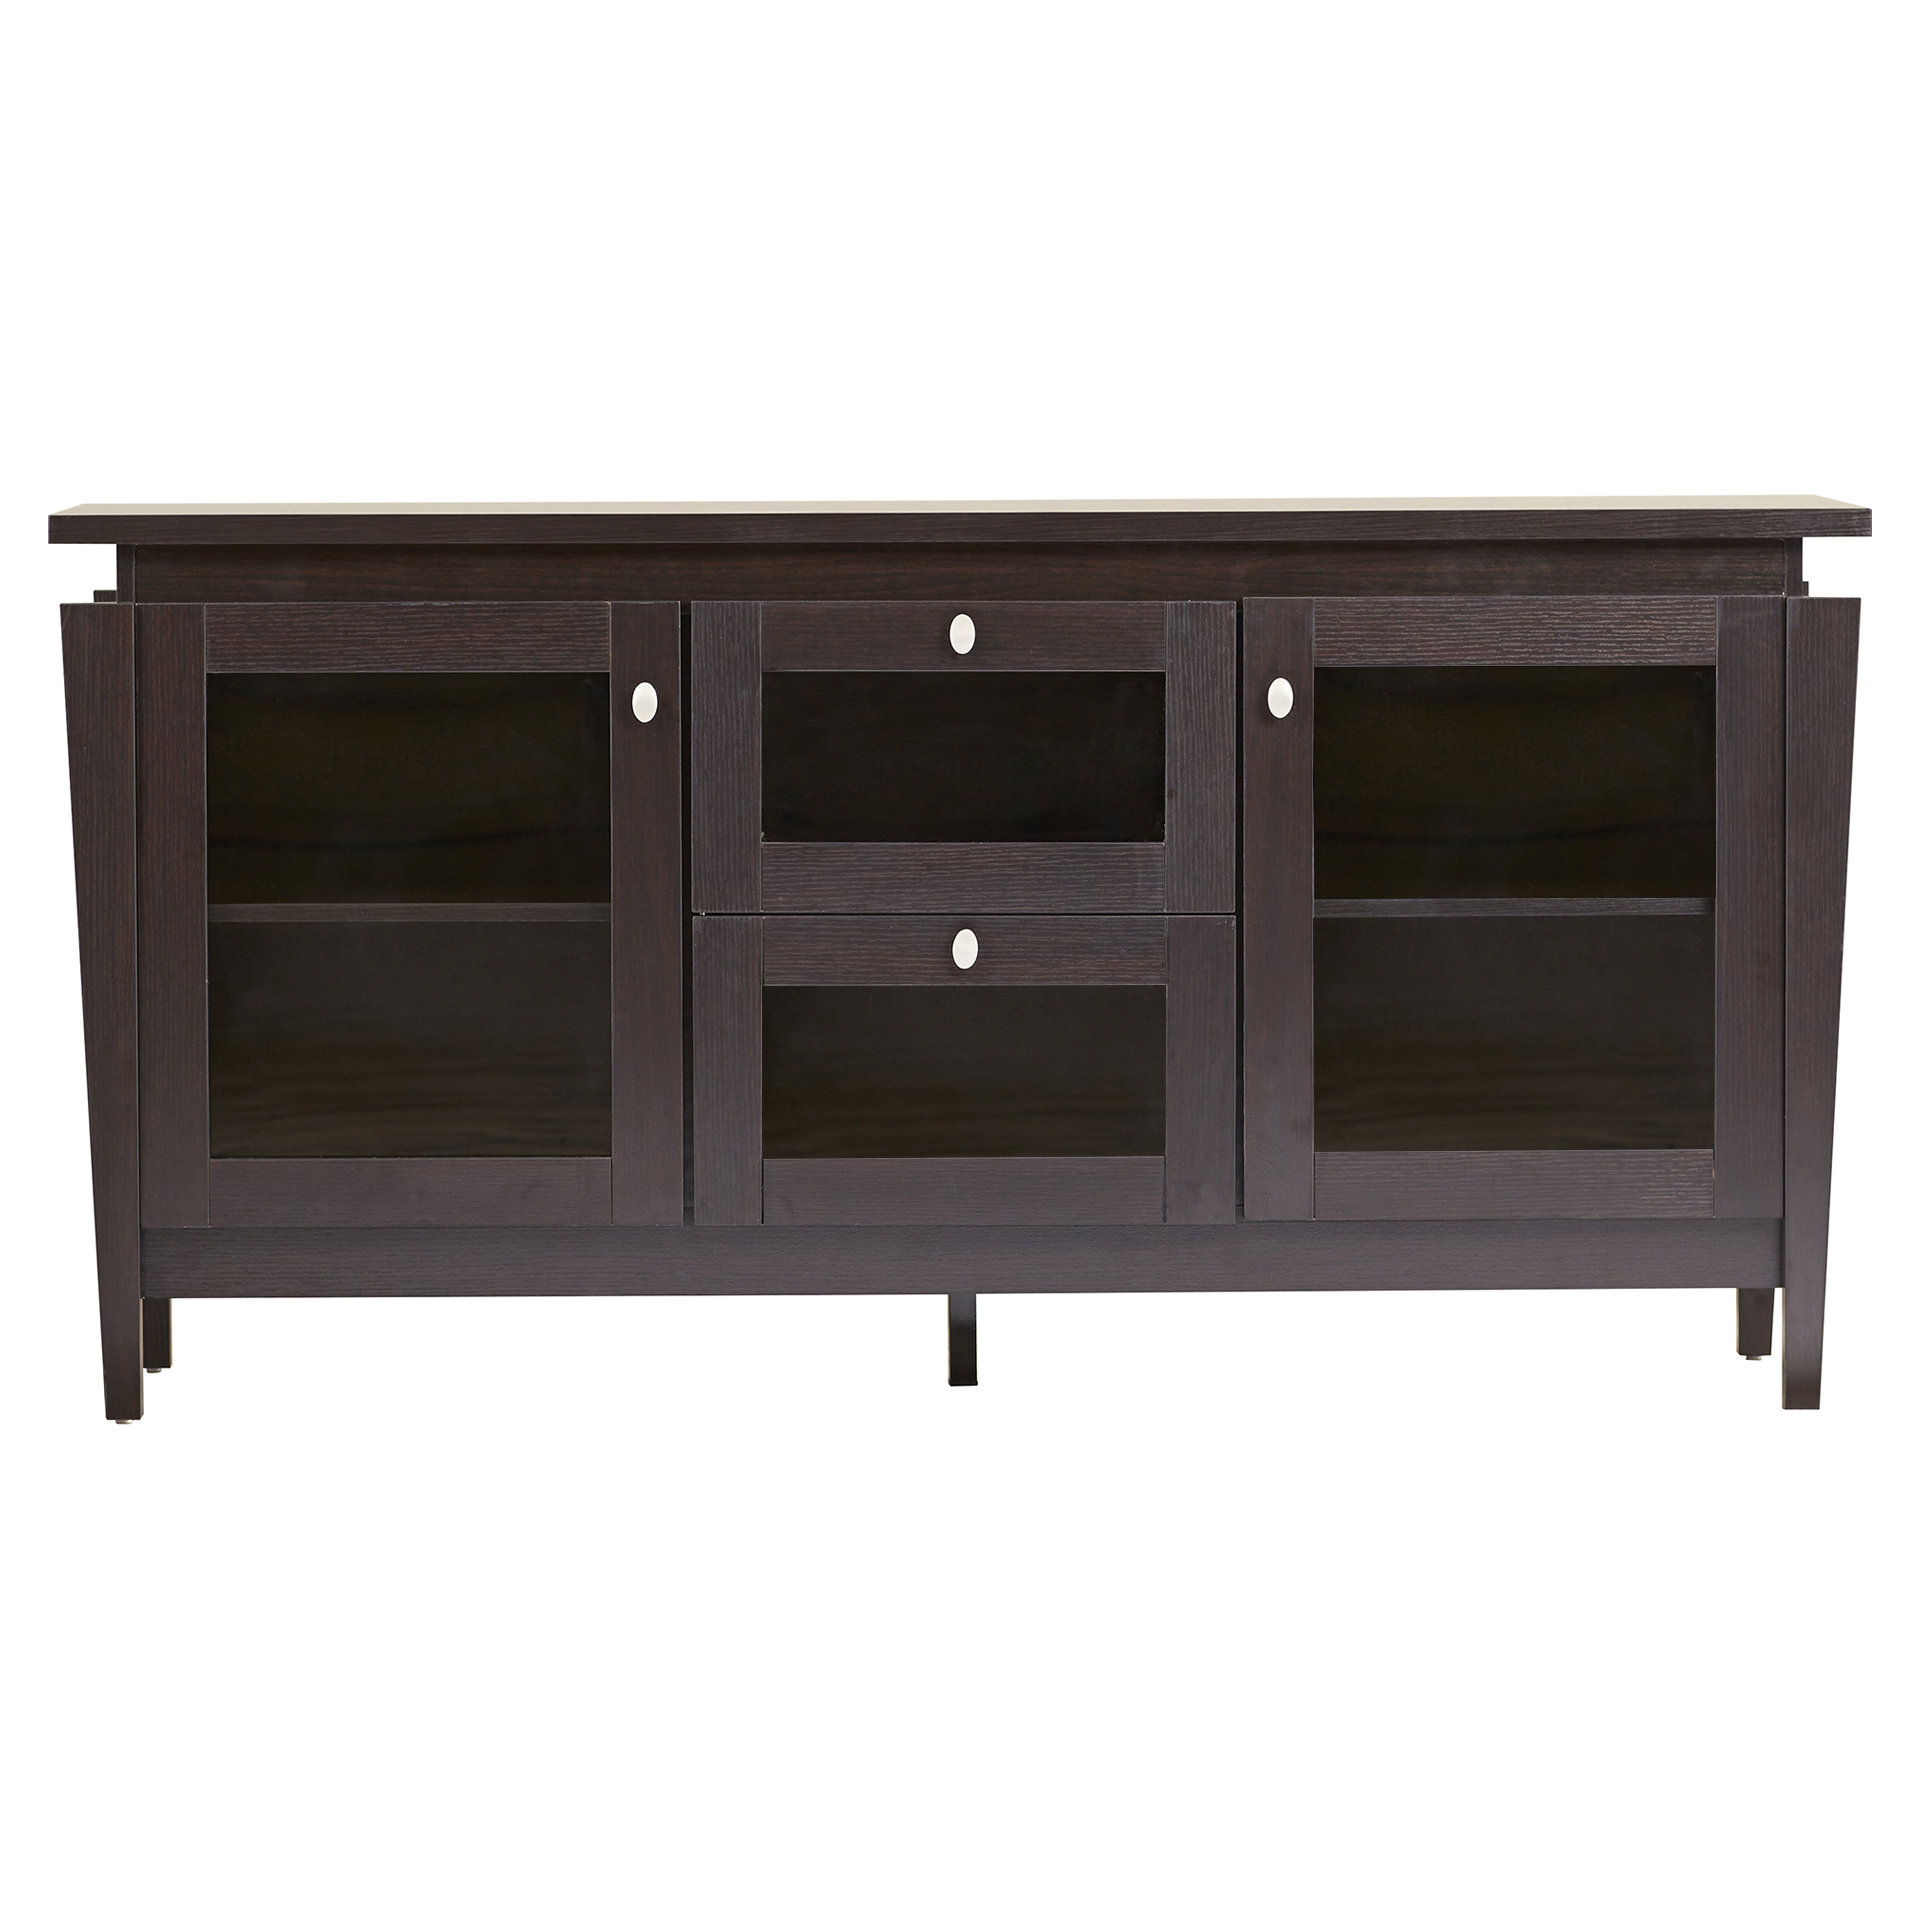 Modern & Contemporary Media Credenza | Allmodern Inside Lainey Credenzas (View 21 of 30)